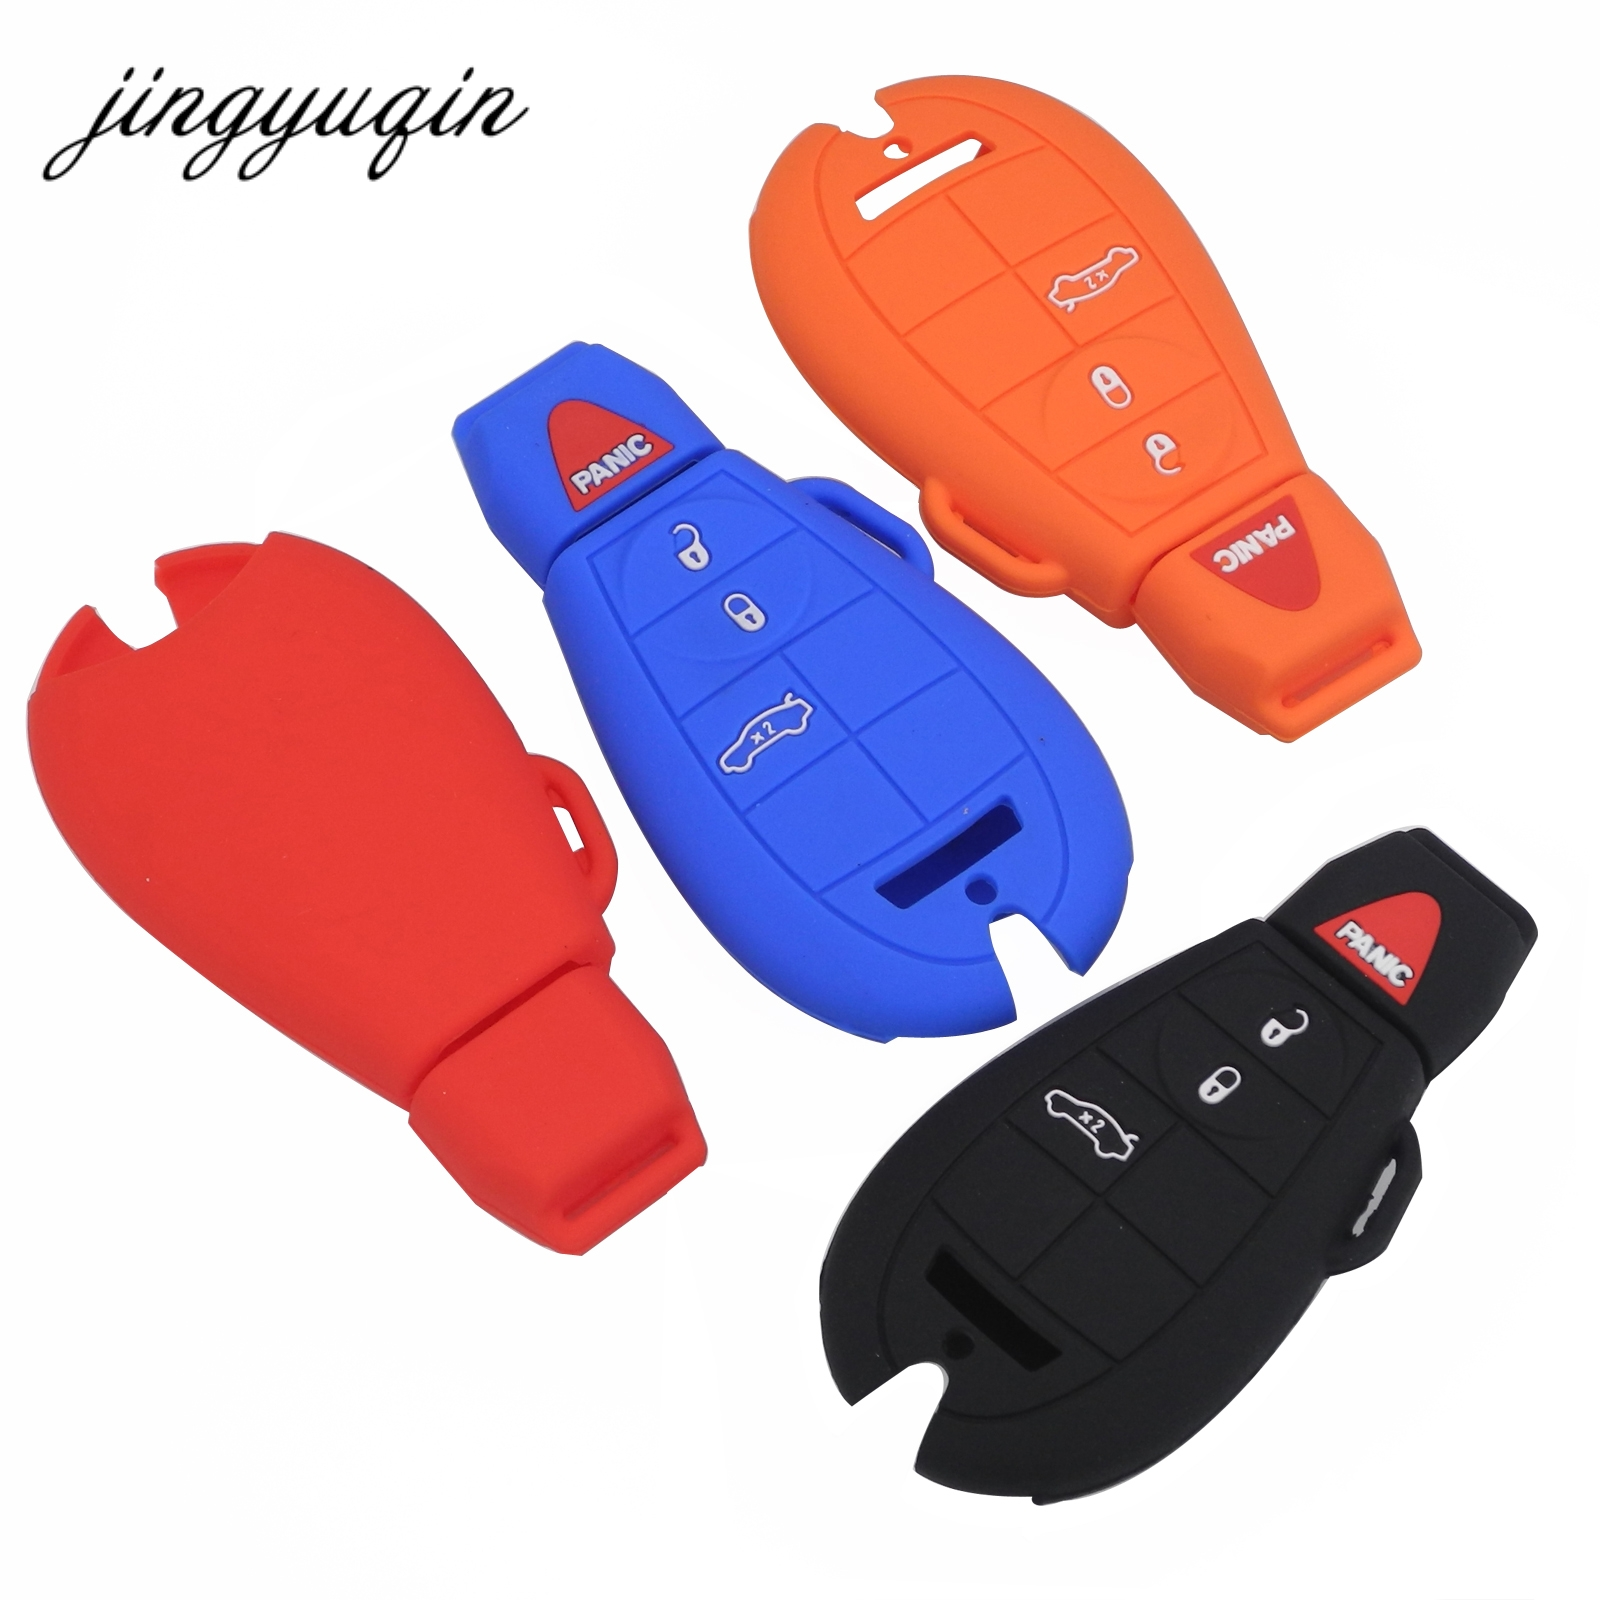 jingyuqin Silicone Case for fiat Chrysler 300 Dodge JCUV Ddart Jeep Grand Cherokee Compass Patriot 4 Button Car Key Cover spiral cable sub assy for jeep wrangler patriot grand cherokee commander dodge nitro caliber chrysler 200 sebring 5156106ab